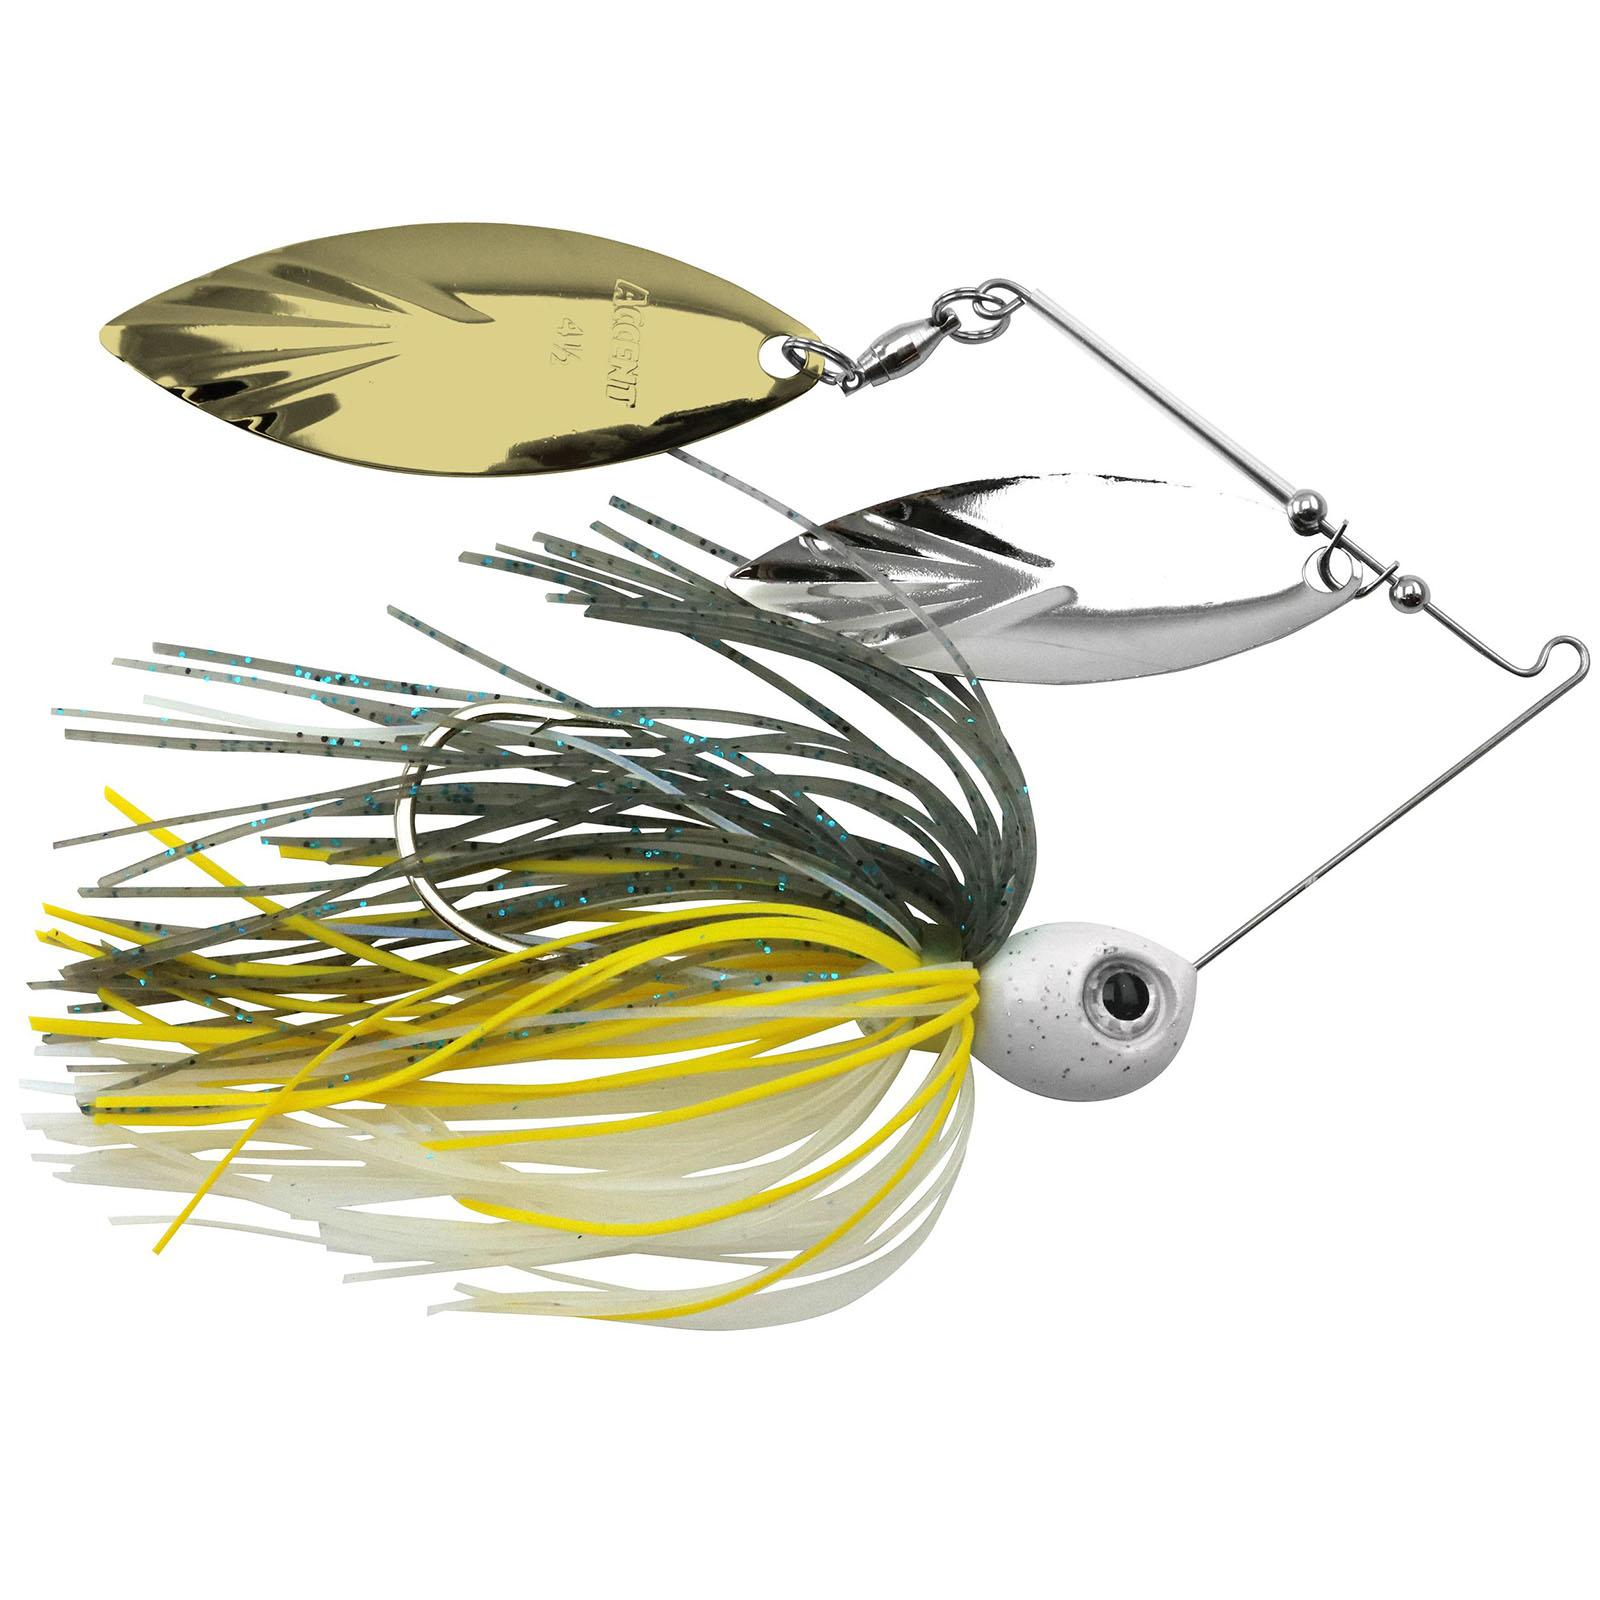 Accent River Special Double Willow Spinnerbait Color Nickel/Gold Blades - Sizzling Shad Skirt Weight 1/4 oz thumbnail